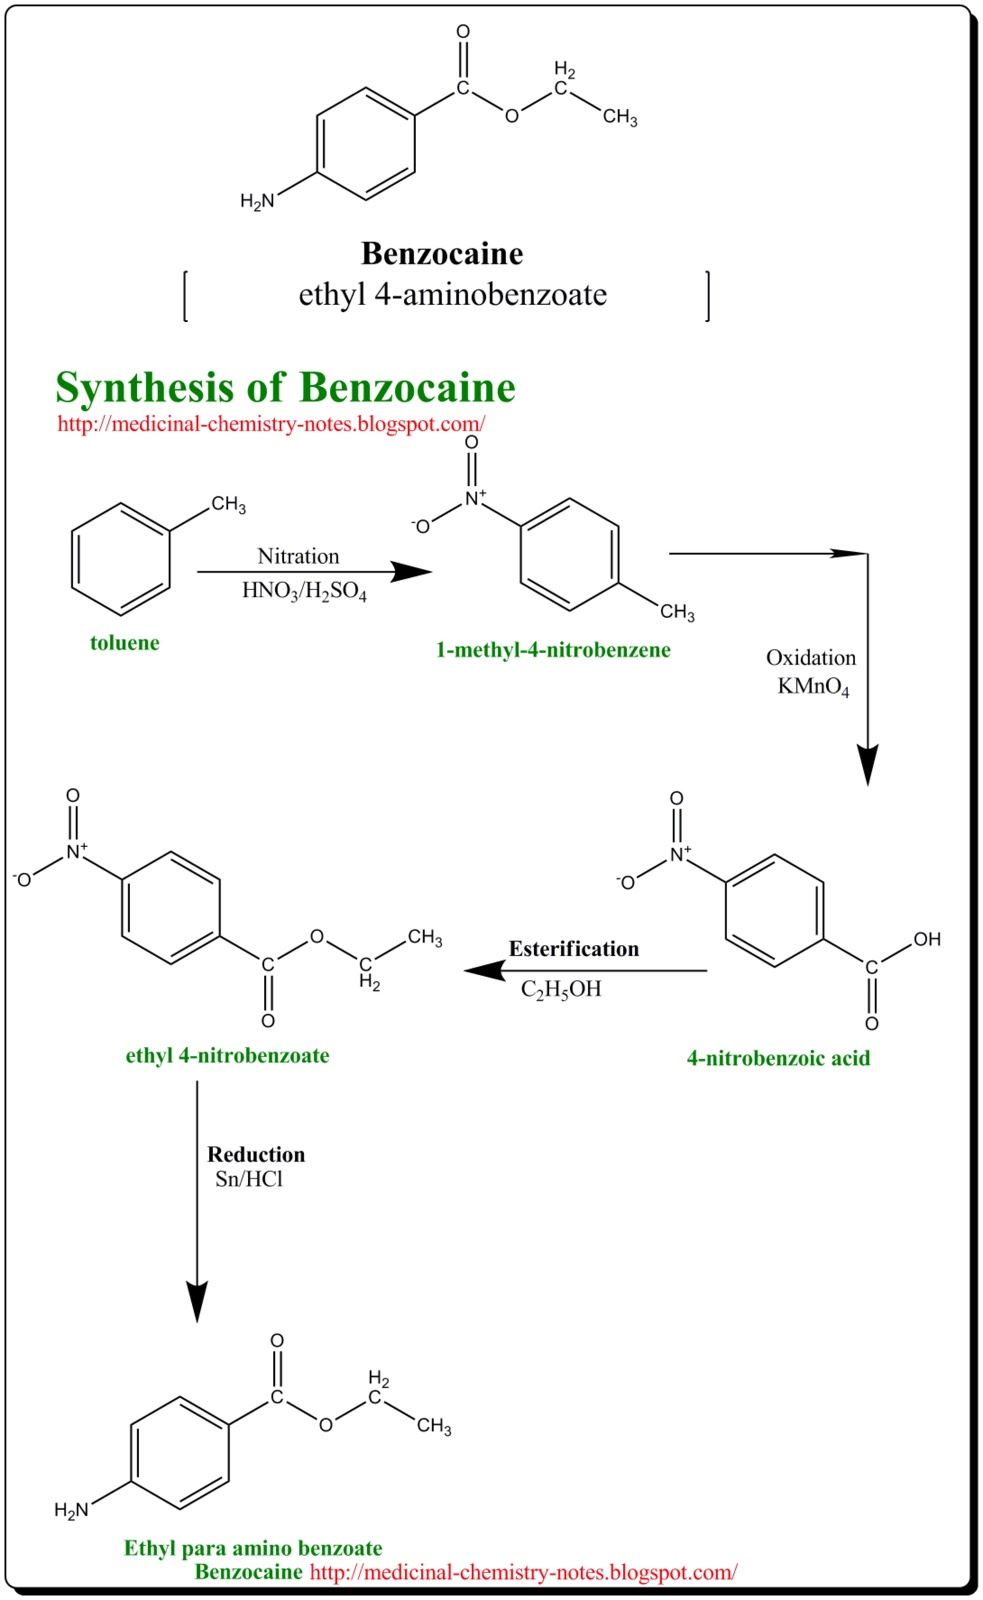 synthesis of benzocaine Synthesis of benzocaine purpose: to prepare benzocaine (a local anesthetic) from p-aminobenzoic acid and ethanol, via a fischer esterification reaction note: the ethanol used was denatured, and contained about 90% ethanol by weight.